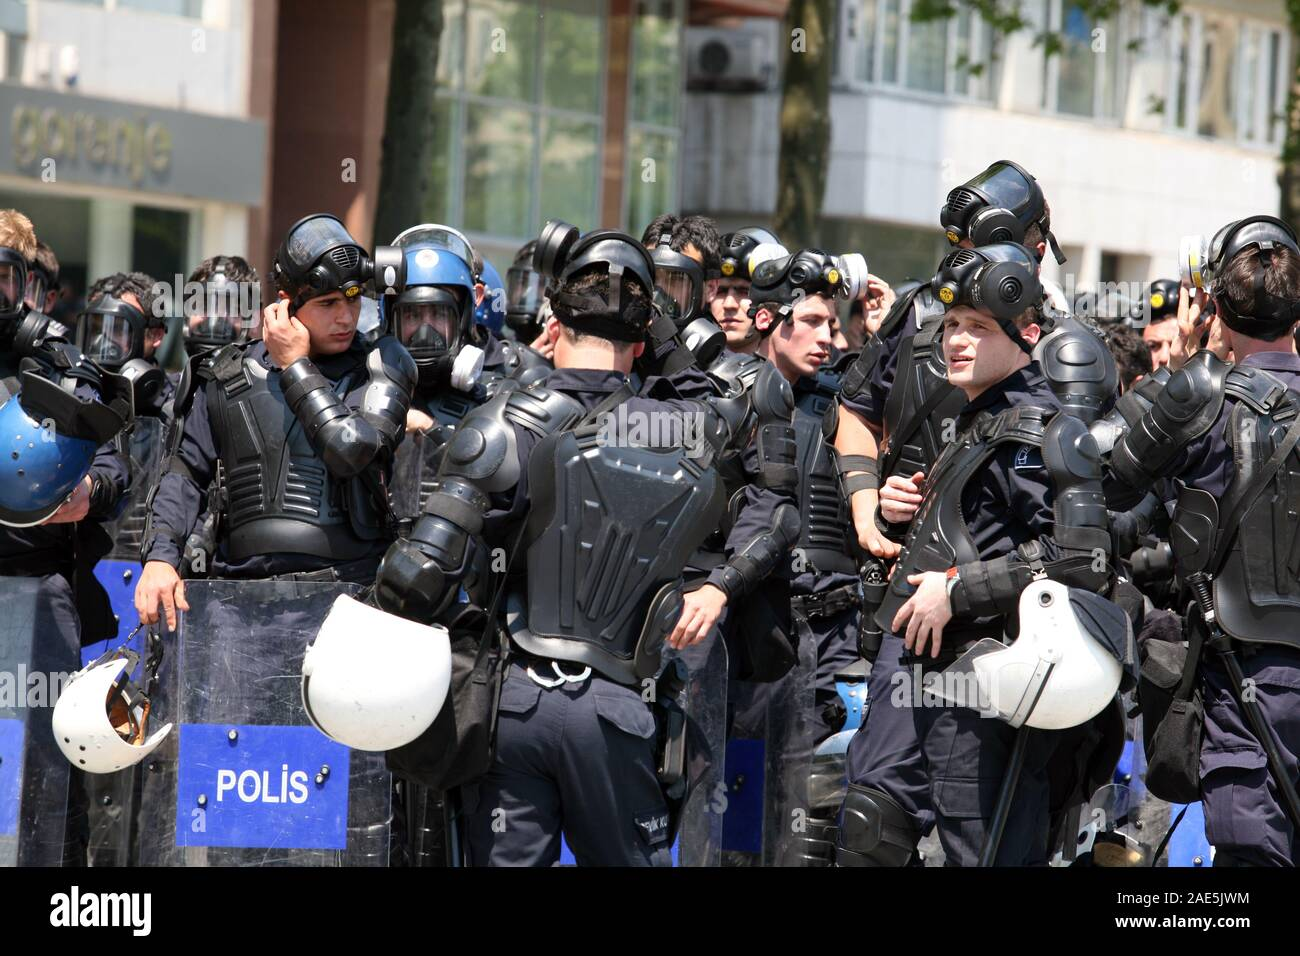 ISTANBUL, TURKEY - MAY 1: International Workers Day. Turkish riot police  officers are preparing for protesters on